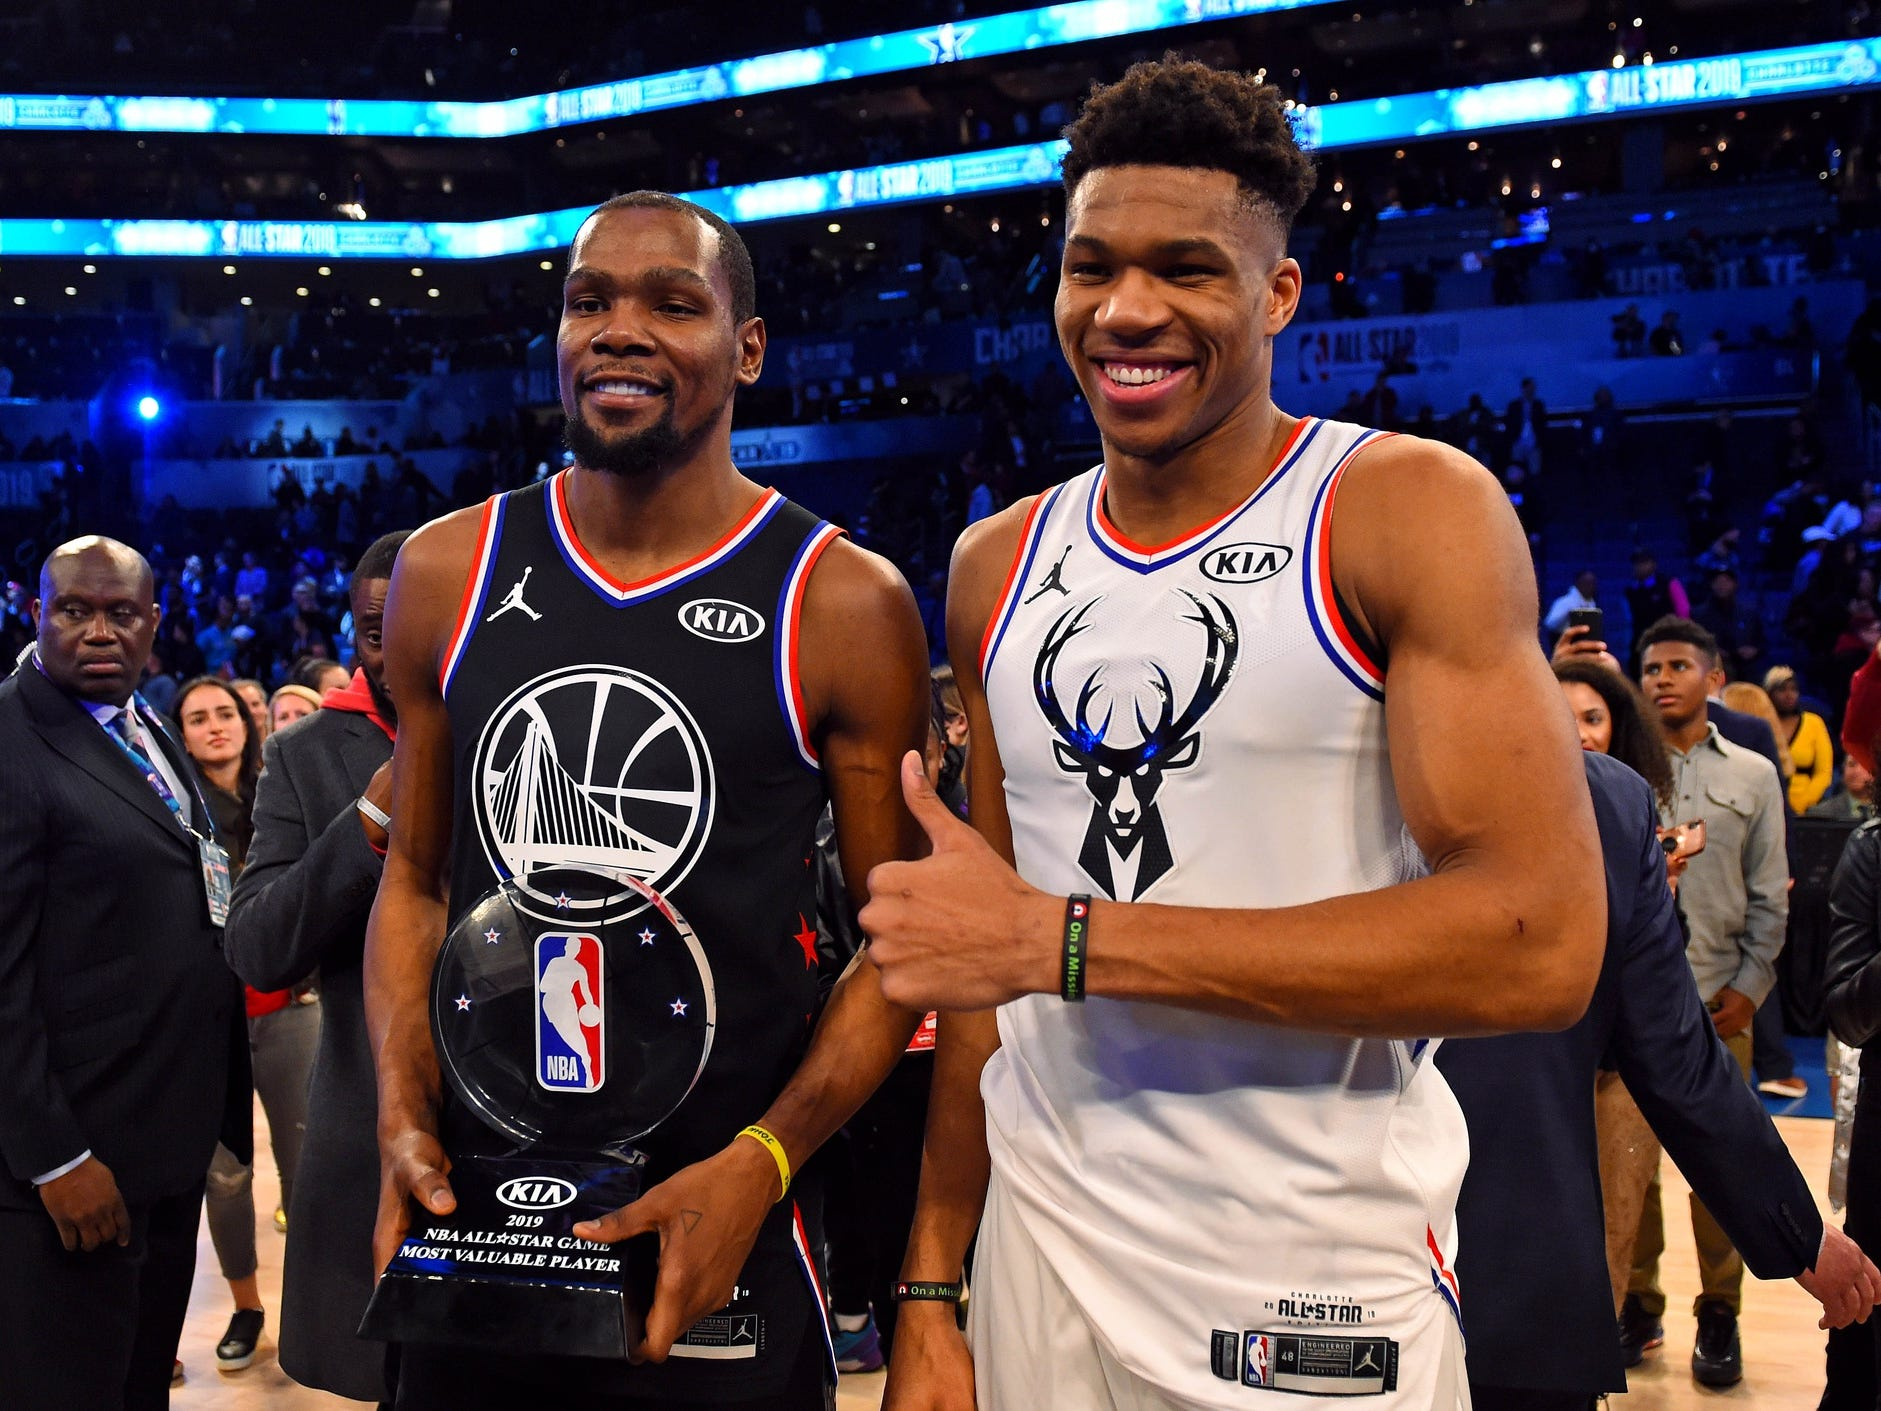 Giannis Antetokonumpo  stands with Kevin Durant after Durant is presented with the NBA All-Star Game MVP trophy.